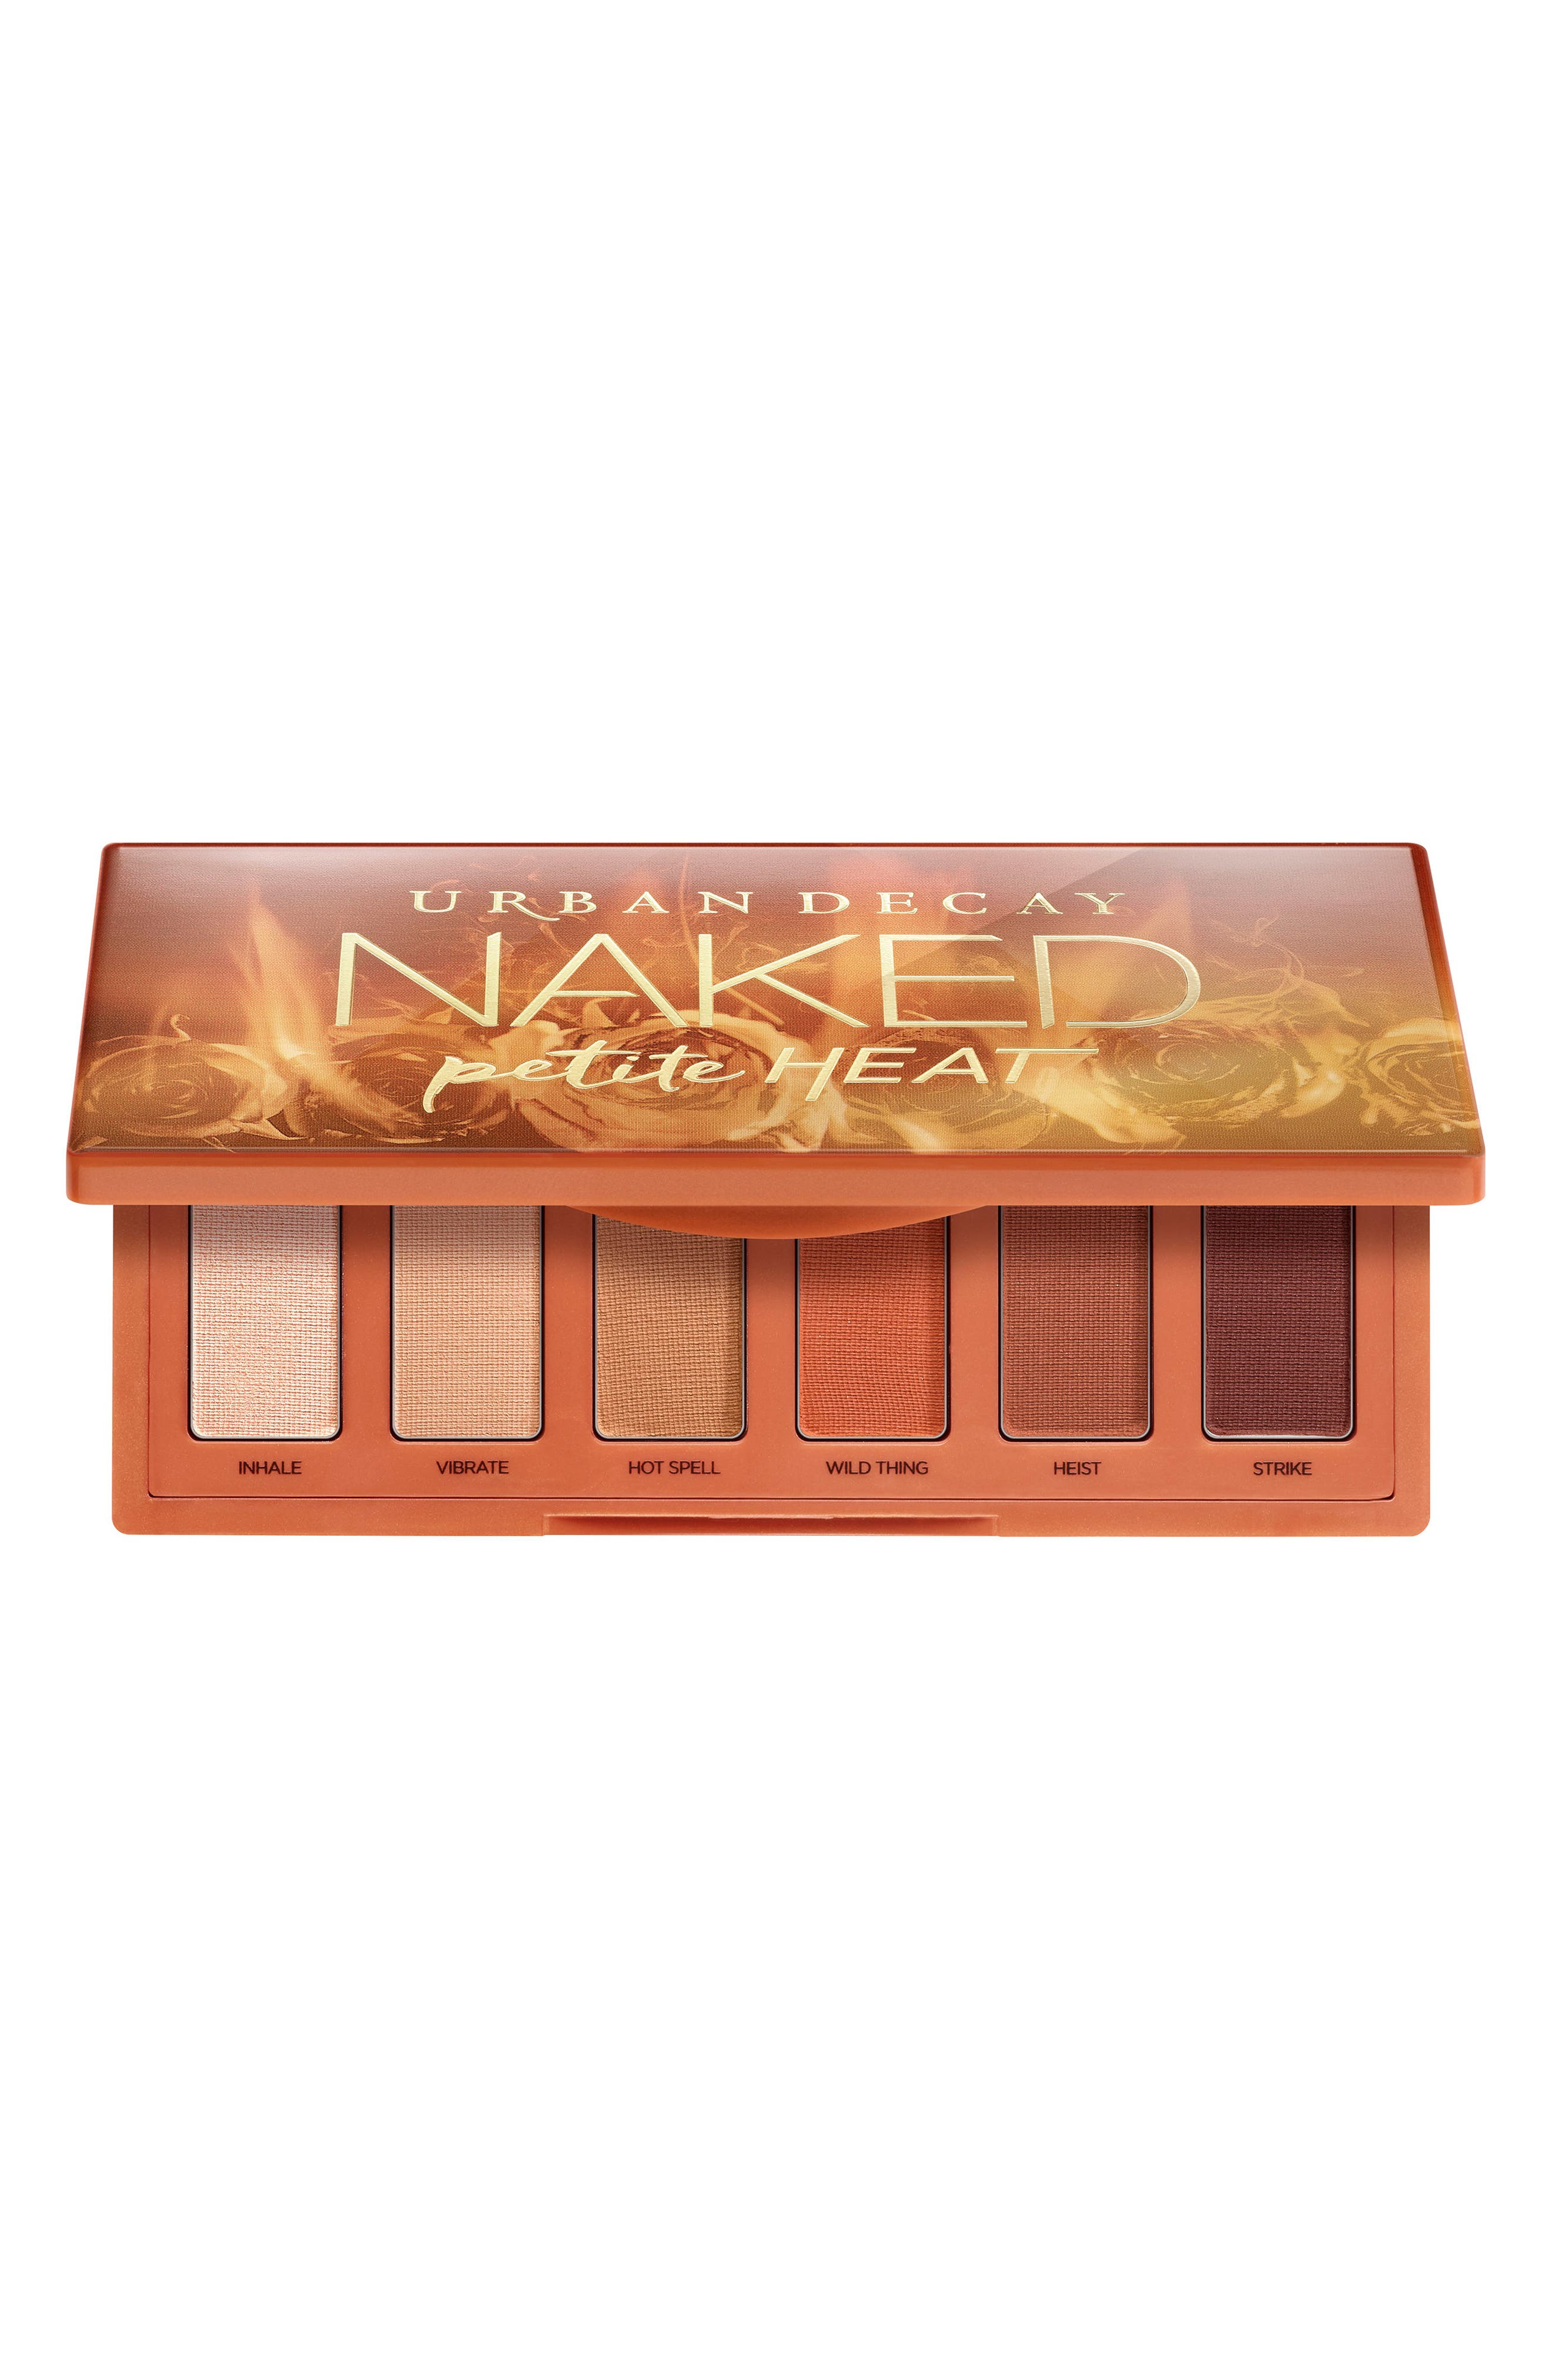 URBAN DECAY,                             Naked Petite Heat Eyeshadow Palette,                             Main thumbnail 1, color,                             NO COLOR